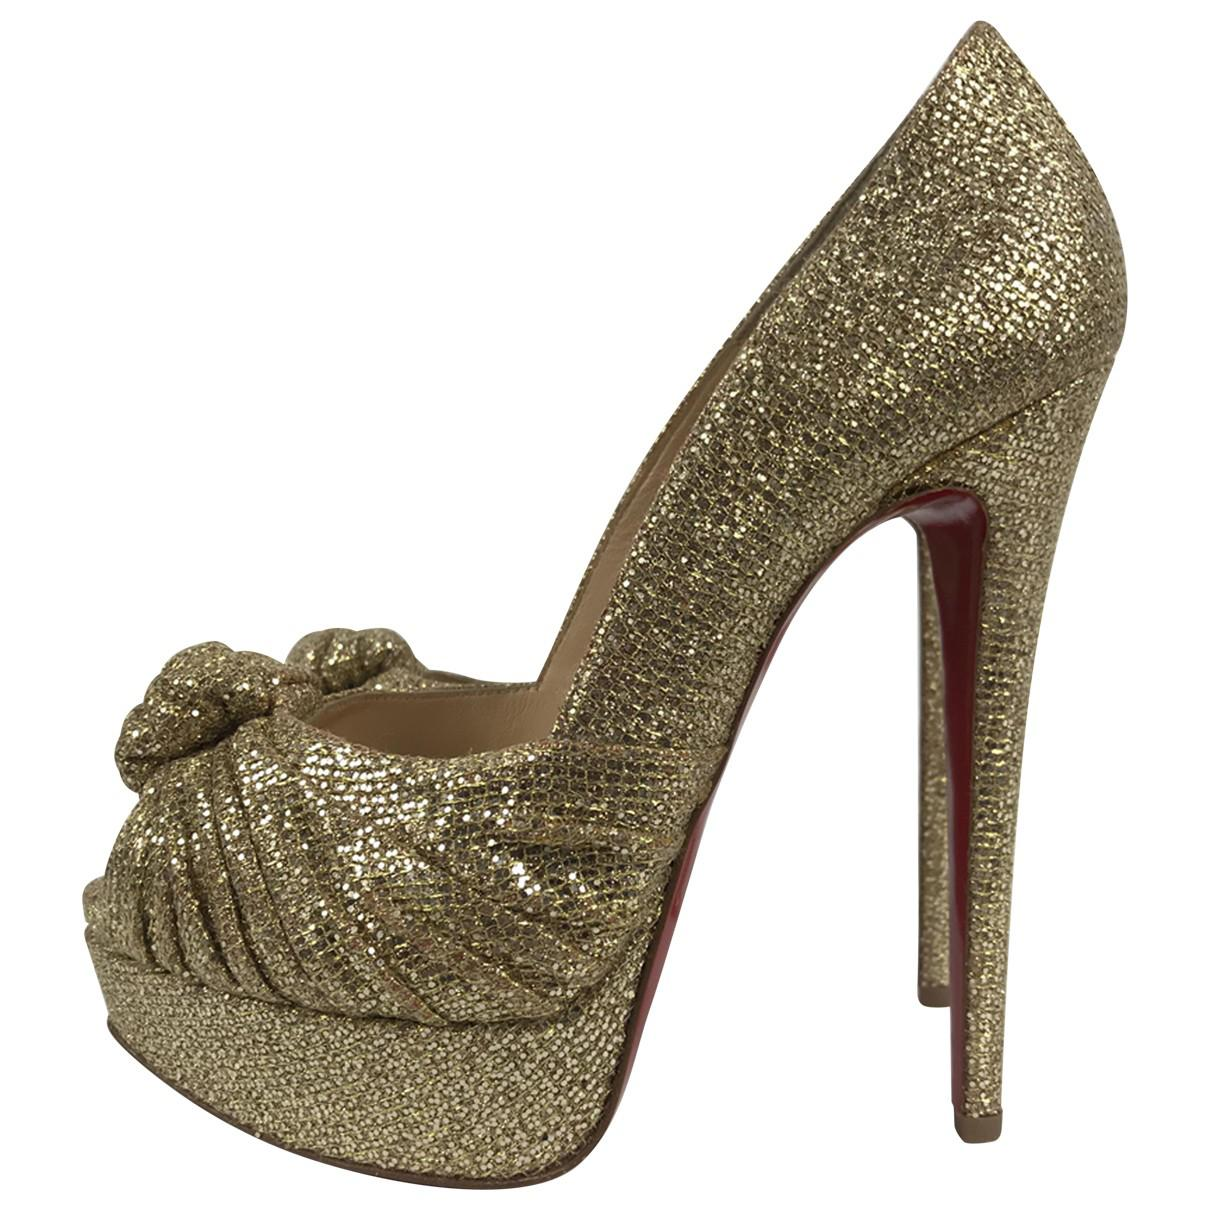 Pre-owned - Glitter heels Christian Louboutin